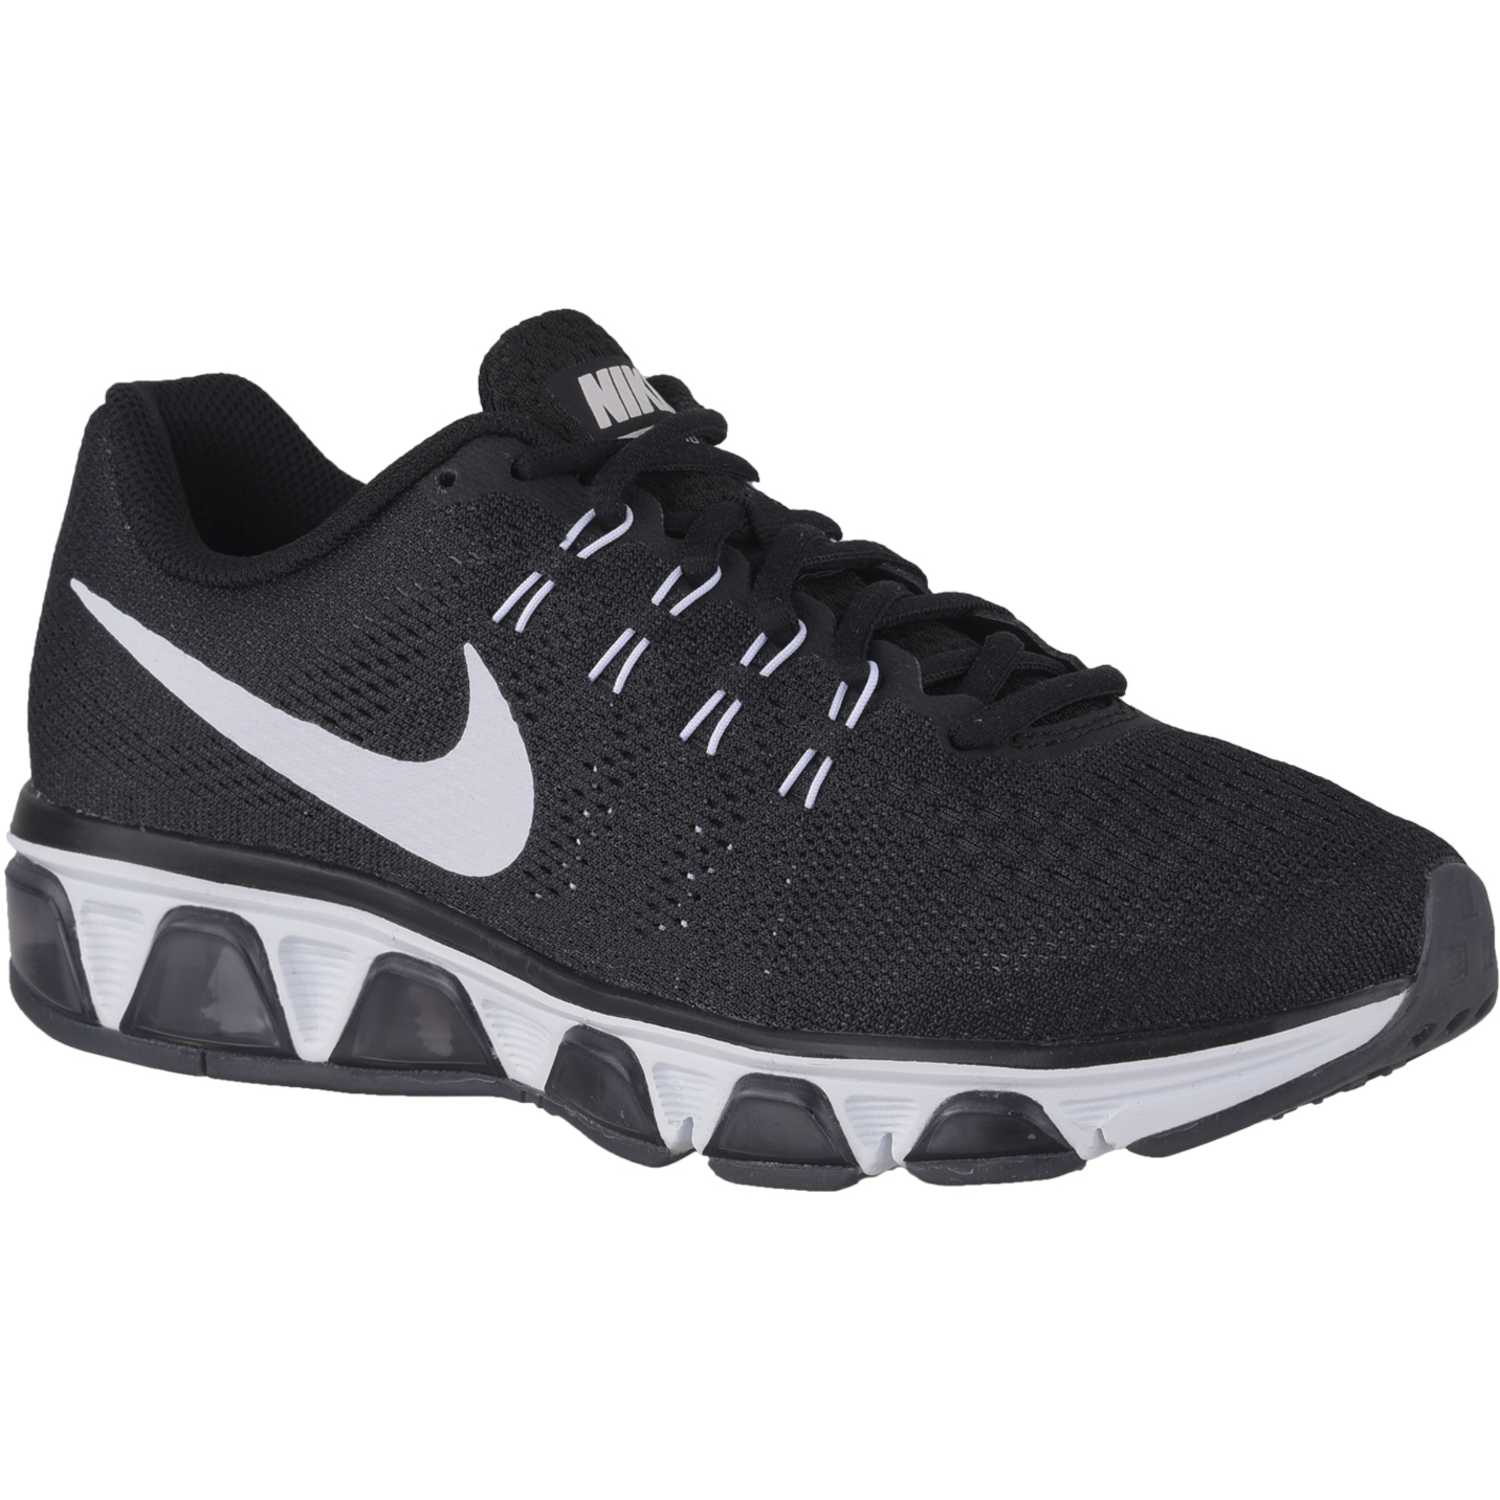 2a38d10d7ae38 Zapatilla de Mujer Nike Negro   blanco wmns air max tailwind 8 ...